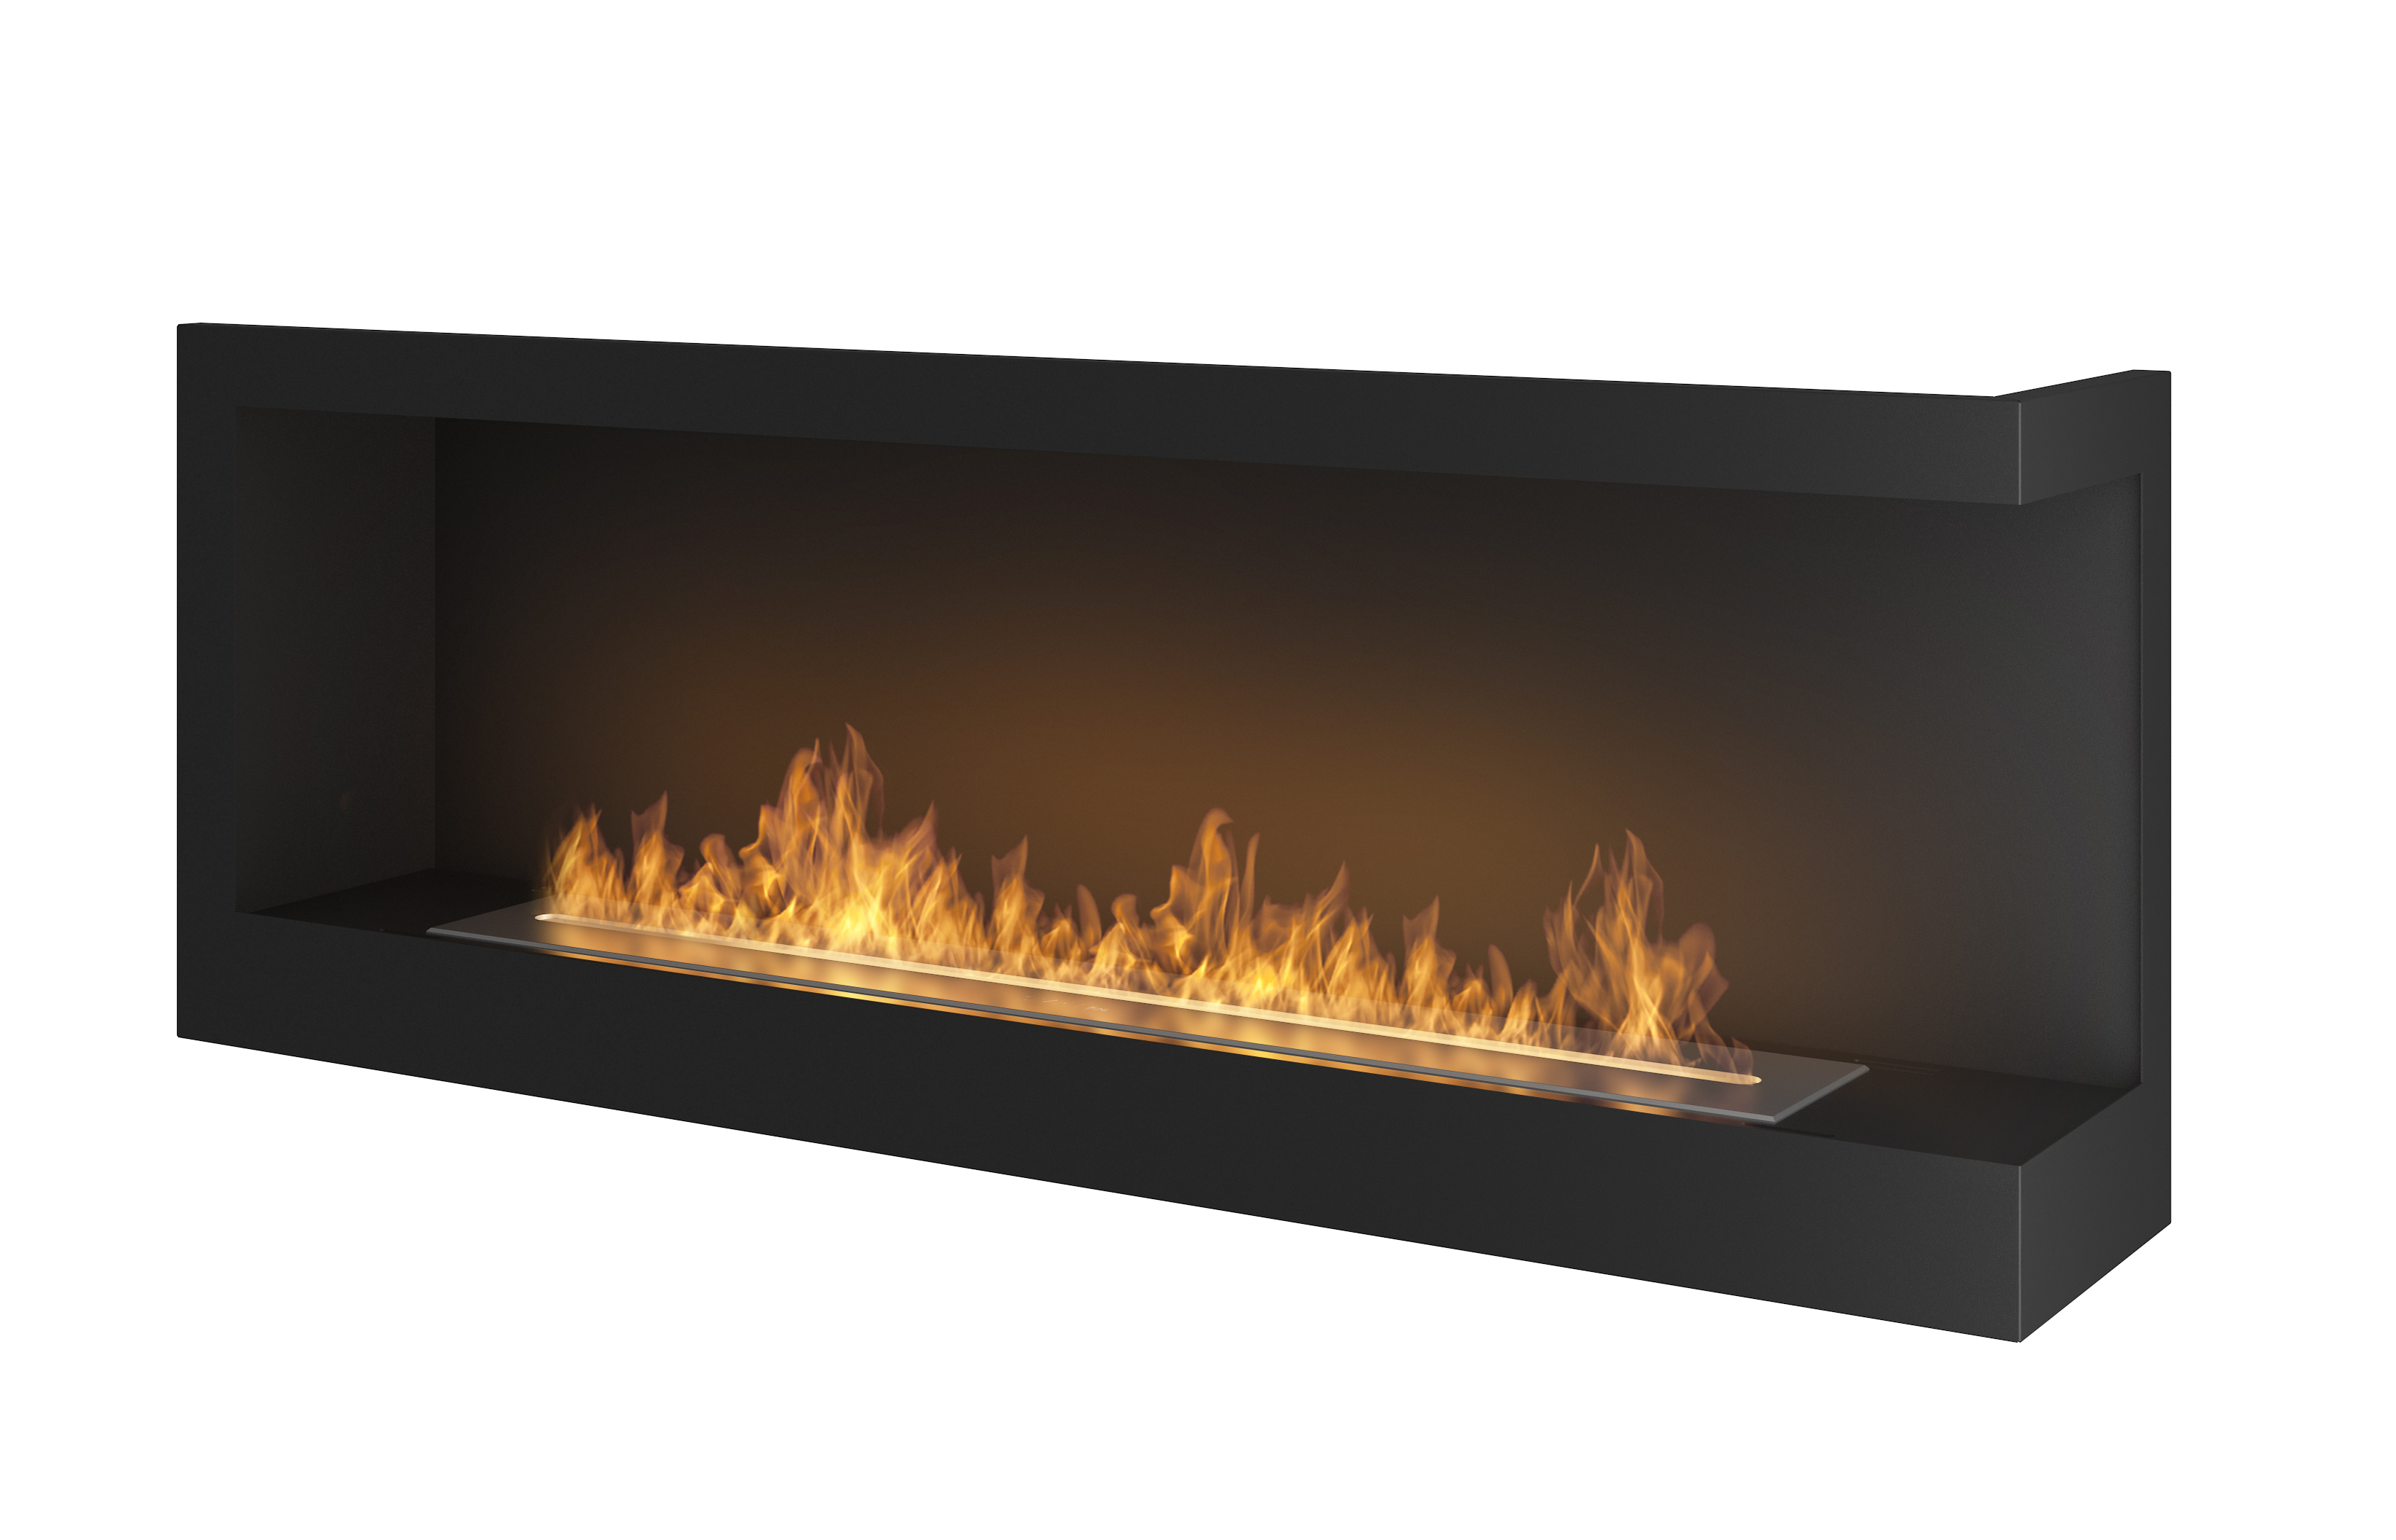 bio built recessed inch in venice ventless wall fireplace p ethanol mounted